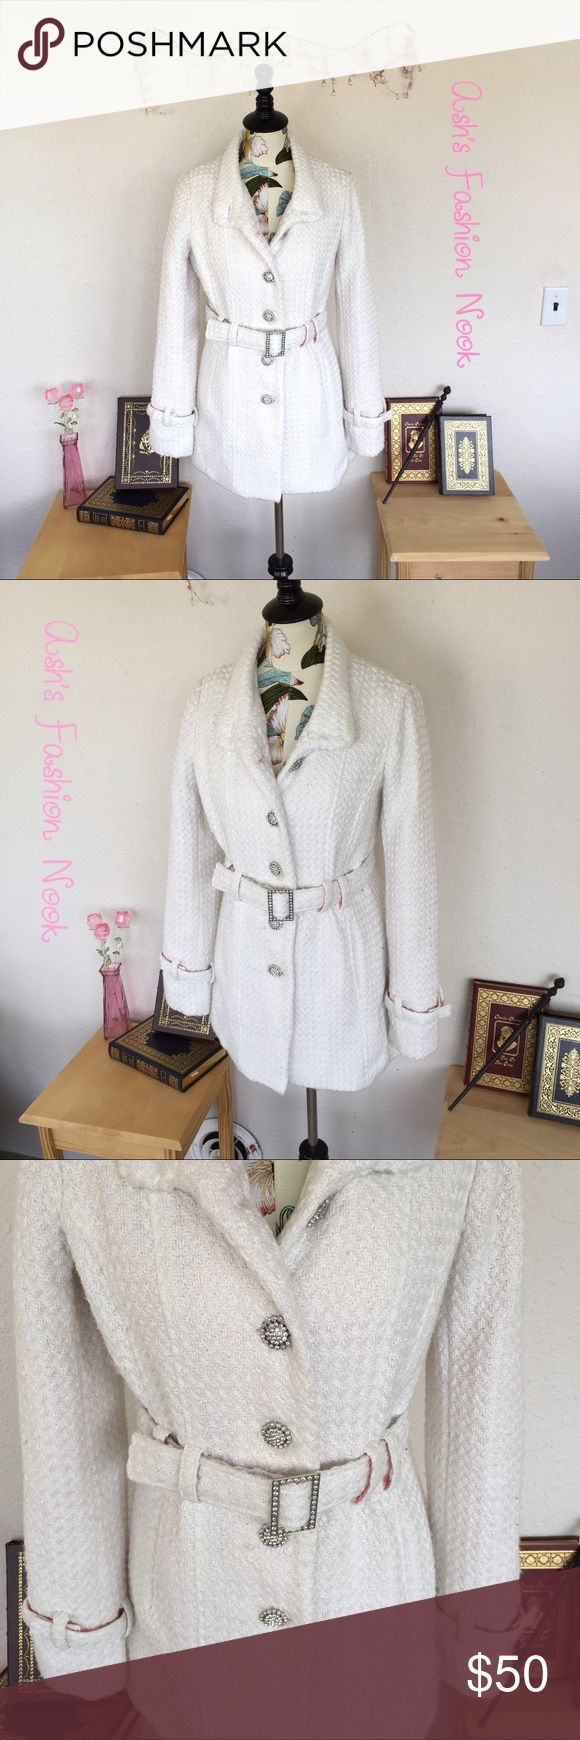 💠New Listing 💠 Vanity-White Dress Coat 🌸EUC! Gorgeous, white dress coat. Great for special occasions. Has beautiful rhinestone buttons, pretty pink satin lining, and a textured white outer.🌸💸Free Shipping on bundles with three or more items. After you bundle your three items, make an offer with $6 off the discounted bundled price.💸 Vanity Jackets & Coats Trench Coats